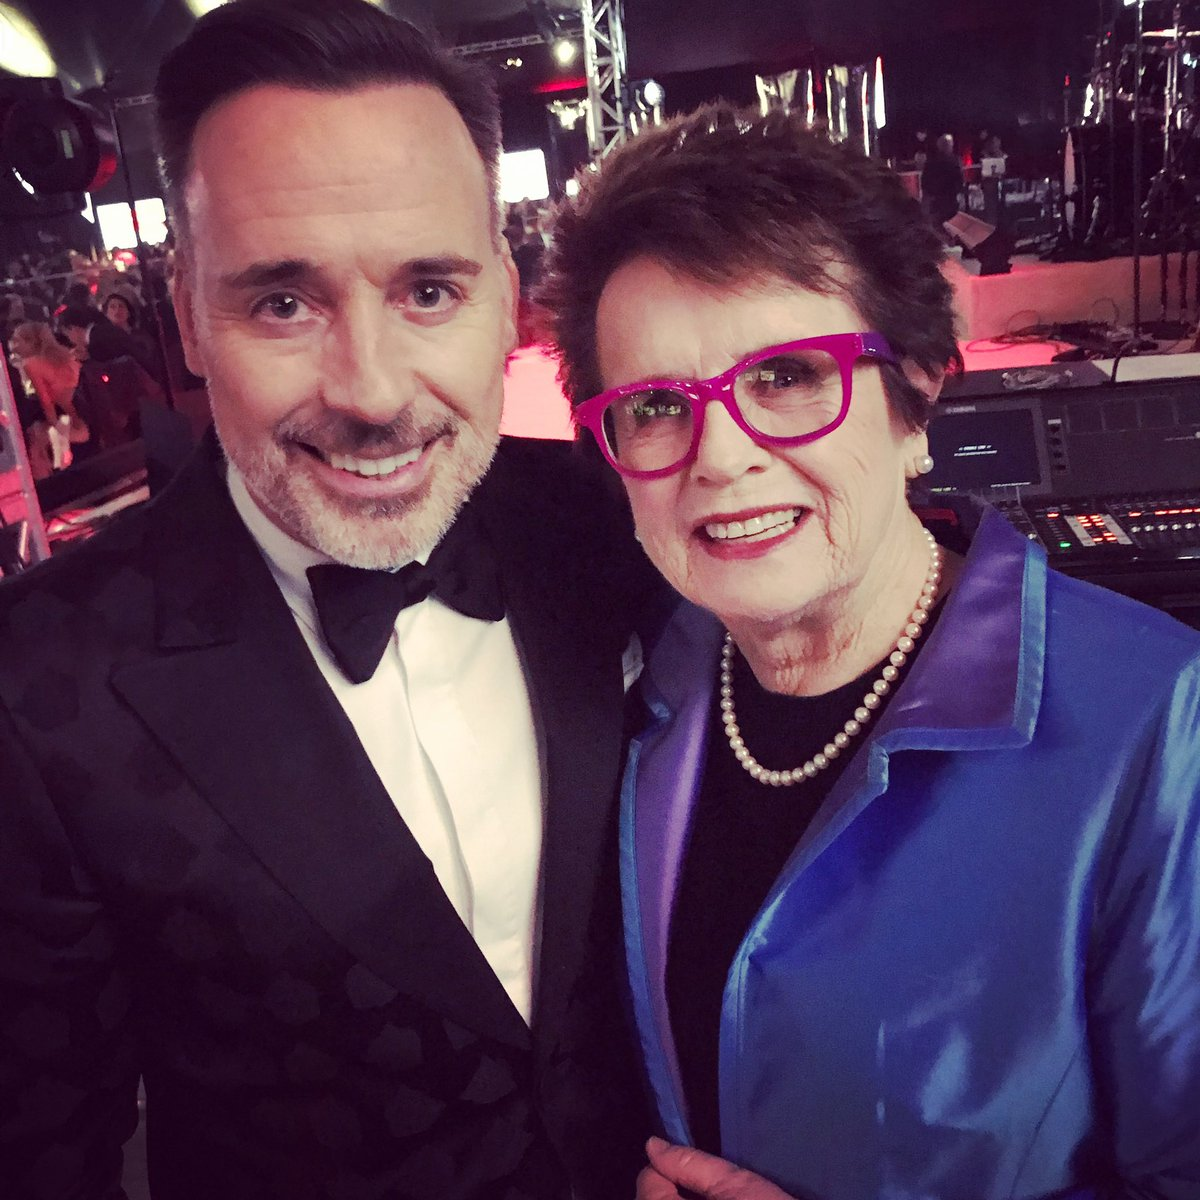 Happy birthday to our wonderful friend, David Furnish. He and @eltonofficial, along with their terrific kids, are such special people. 🎂🎊